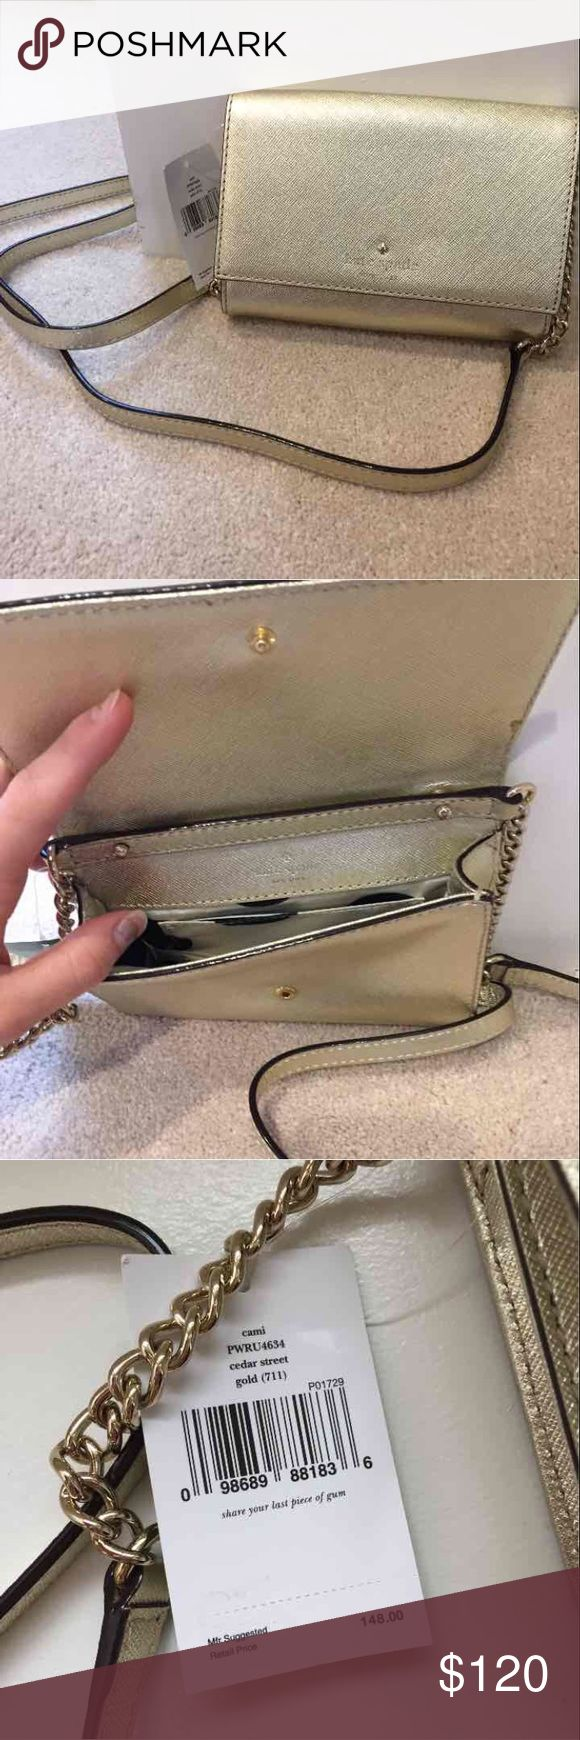 Kate Spade Cami Crossbody Brand new with tags Cami Crossbody by Kate Spade in Metallic Gold. Retail price $148. Last photo is a stock photo for refererence. This bag is perfect for weddings and special events, or going out and just want to carry a few things. kate spade Bags